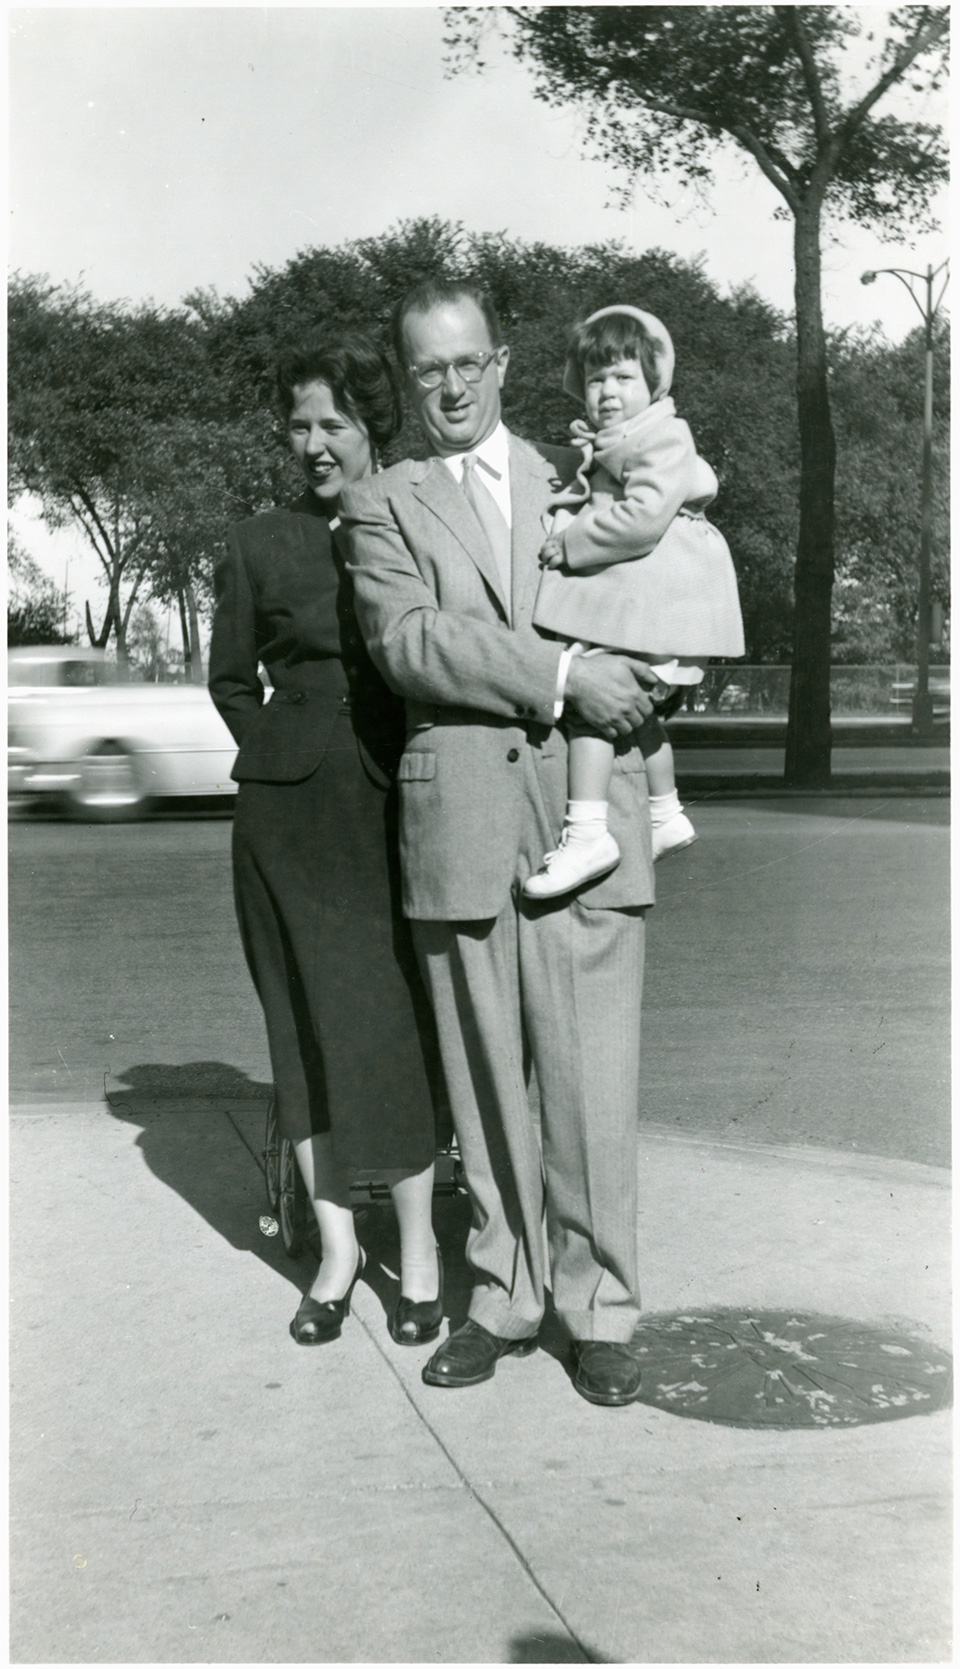 R.S. holding Ruth Mendelsohn, as he and Rita stand on a sidewalk in front of some trees.